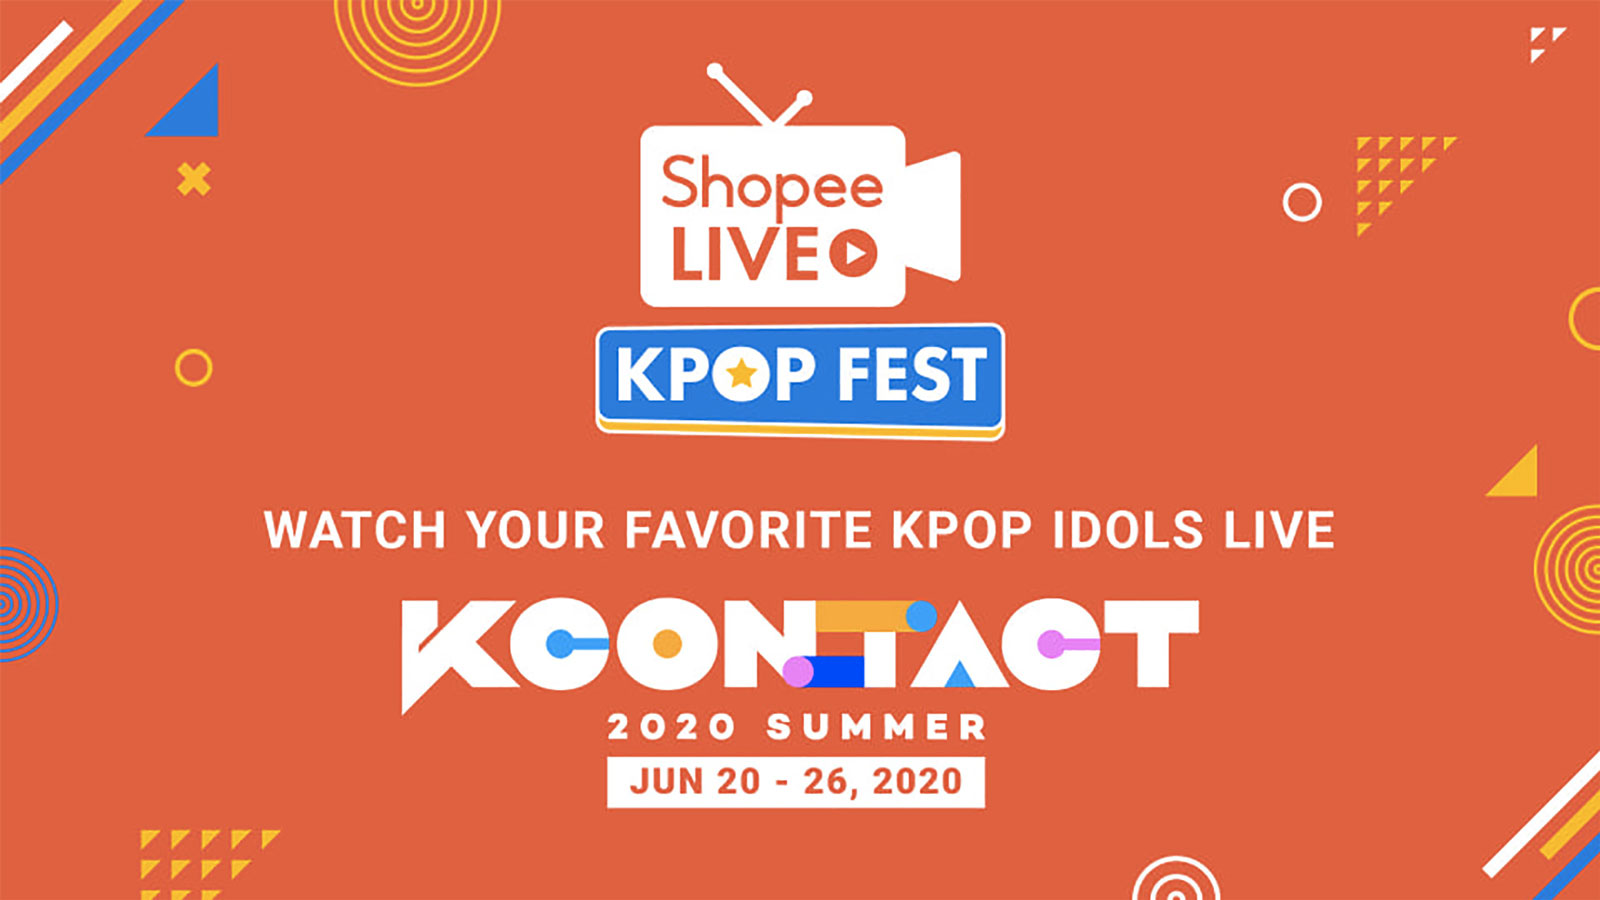 Shopee partners with CJ ENM to bring KCON online